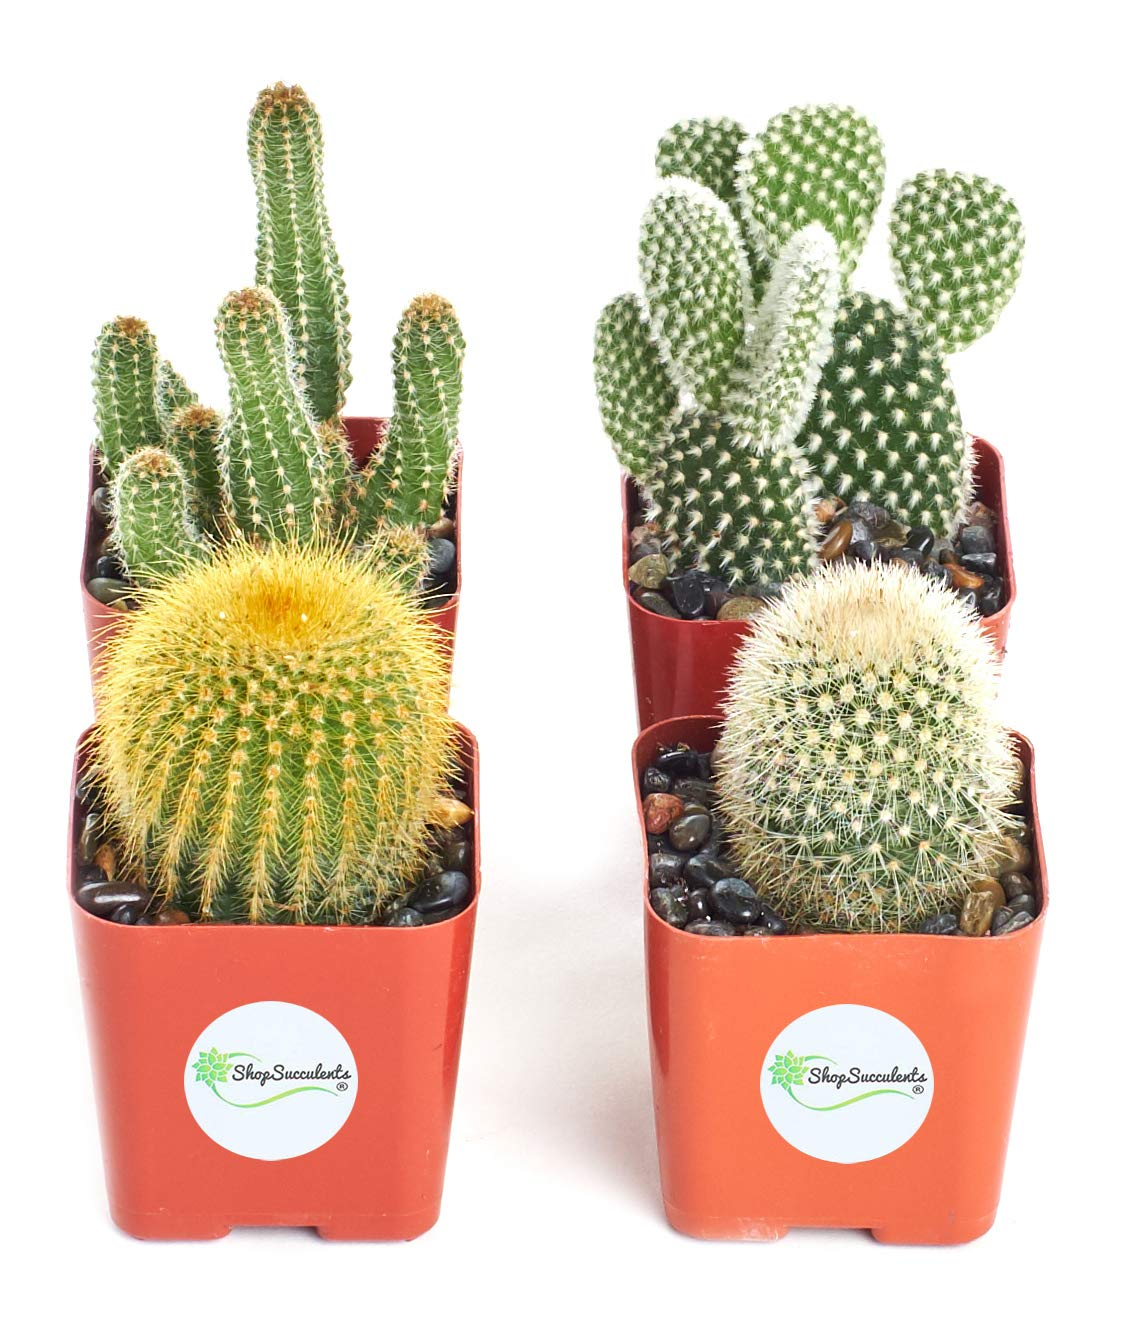 Shop Succulents | Cool Cactus Collection of Live Succulent Plants, Hand Selected Variety Pack of Cacti | Collection of 4 by Shop Succulents